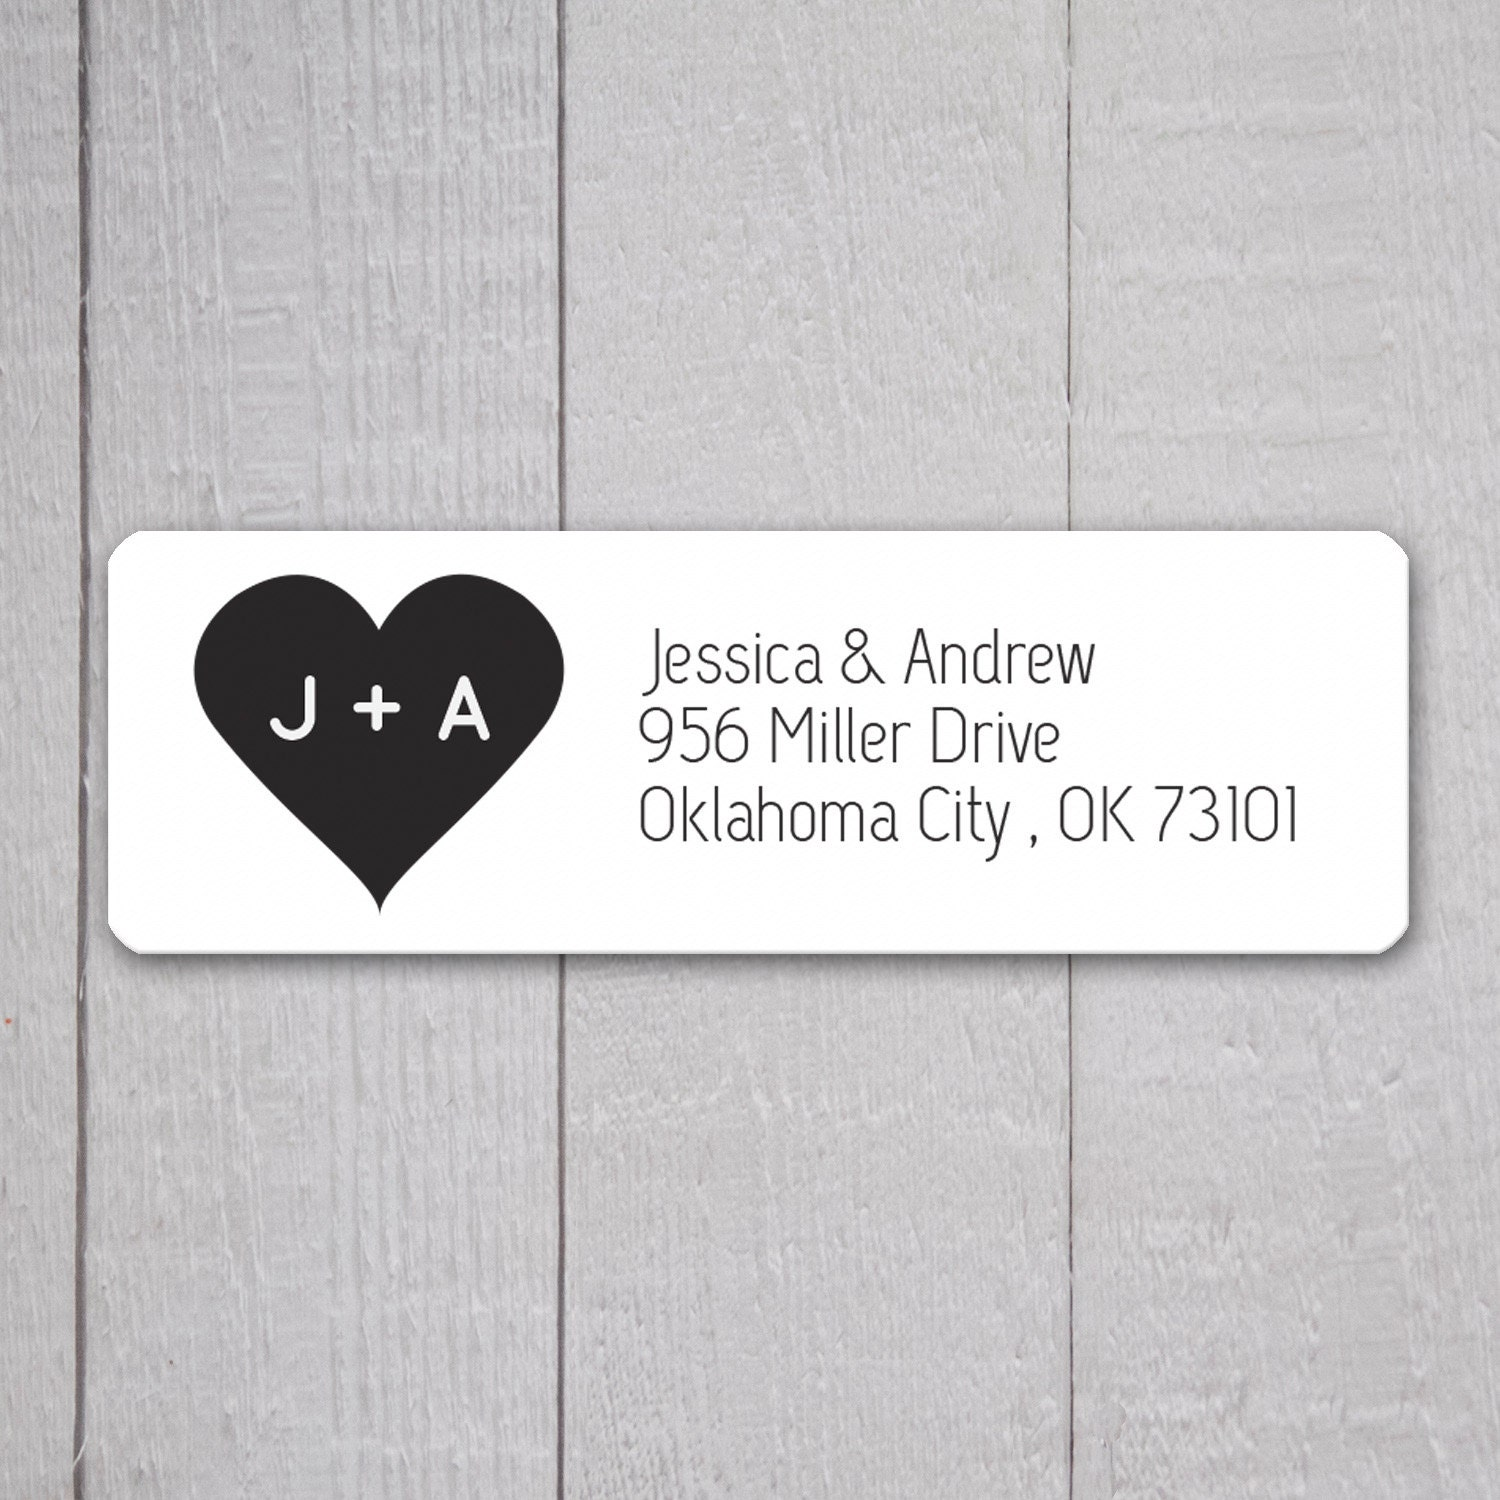 This listing is for a set of personalized return address stickers. All Orange Umbrella Co. stickers have advanced digital printing using a high-quality 5 color